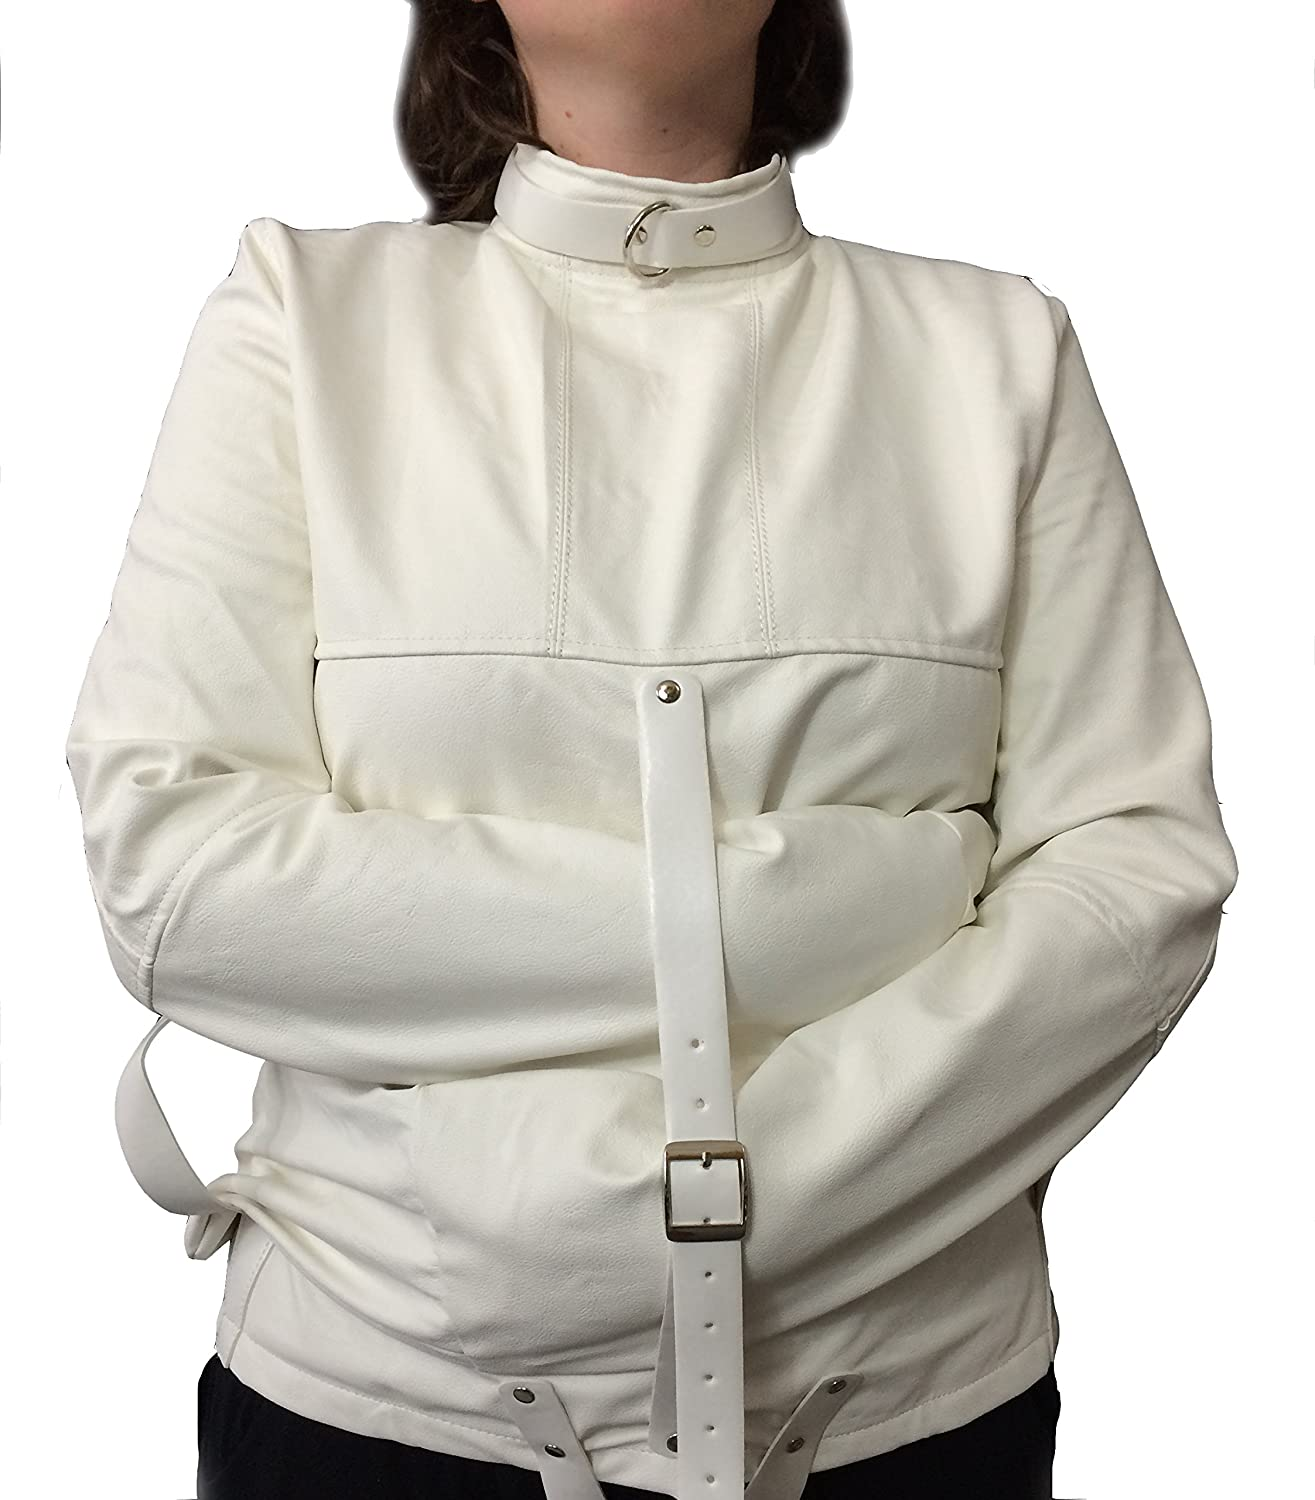 Amazon.com: Unisex White Faux Leather Straight Jacket Costume ...